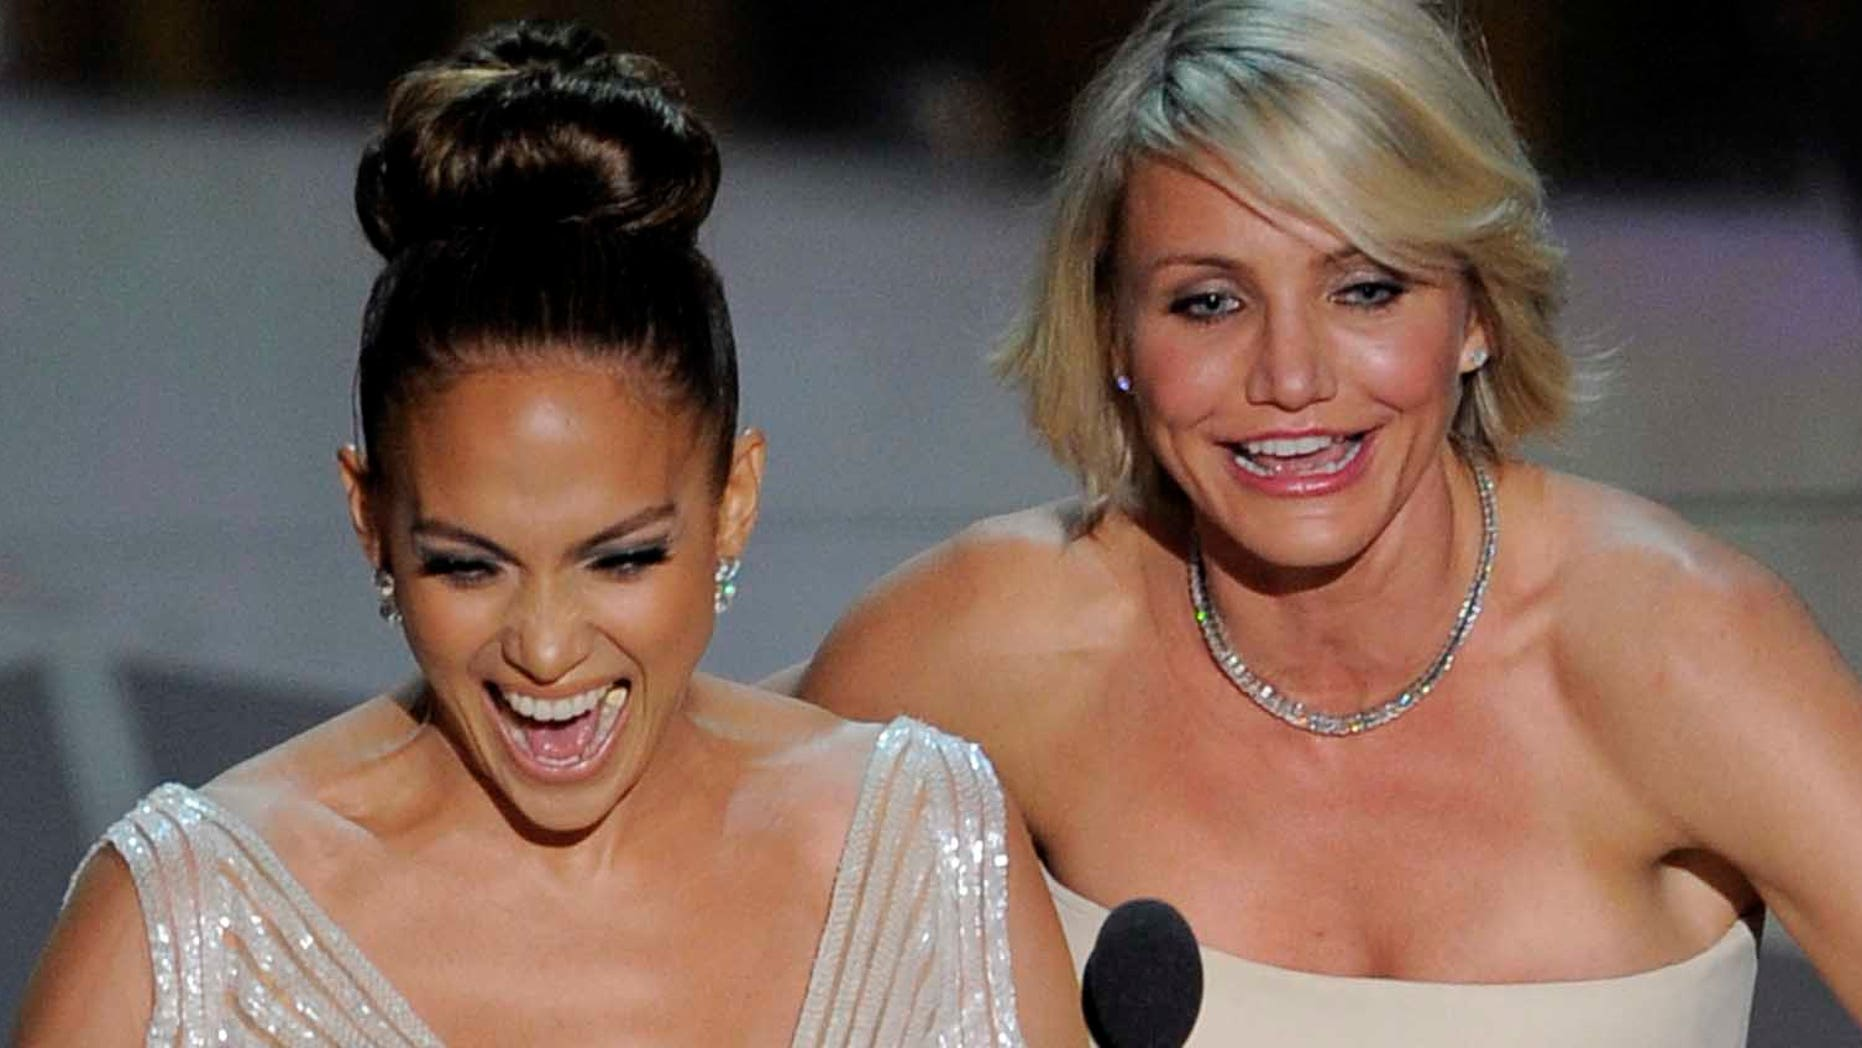 Feb. 26, 2012: Jennifer Lopez, left, and Cameron Diaz present an award during the 84th Academy Awards in the Hollywood section of Los Angeles.